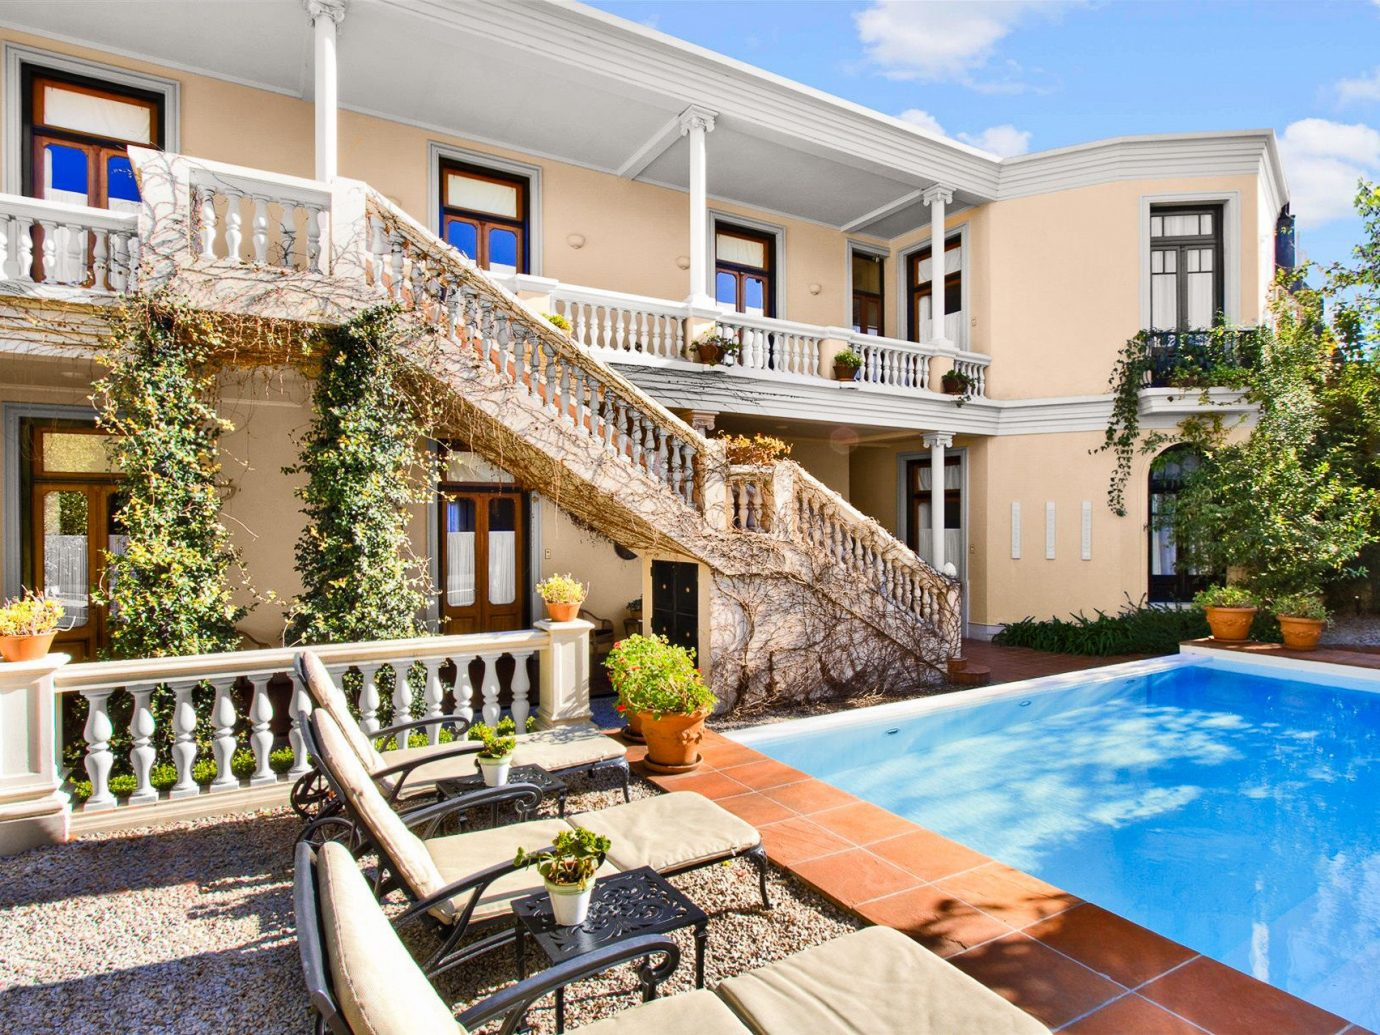 Boutique Hotels Luxury Travel building outdoor ground property home real estate house estate Villa apartment swimming pool backyard leisure facade elevation Resort cottage outdoor structure window condominium